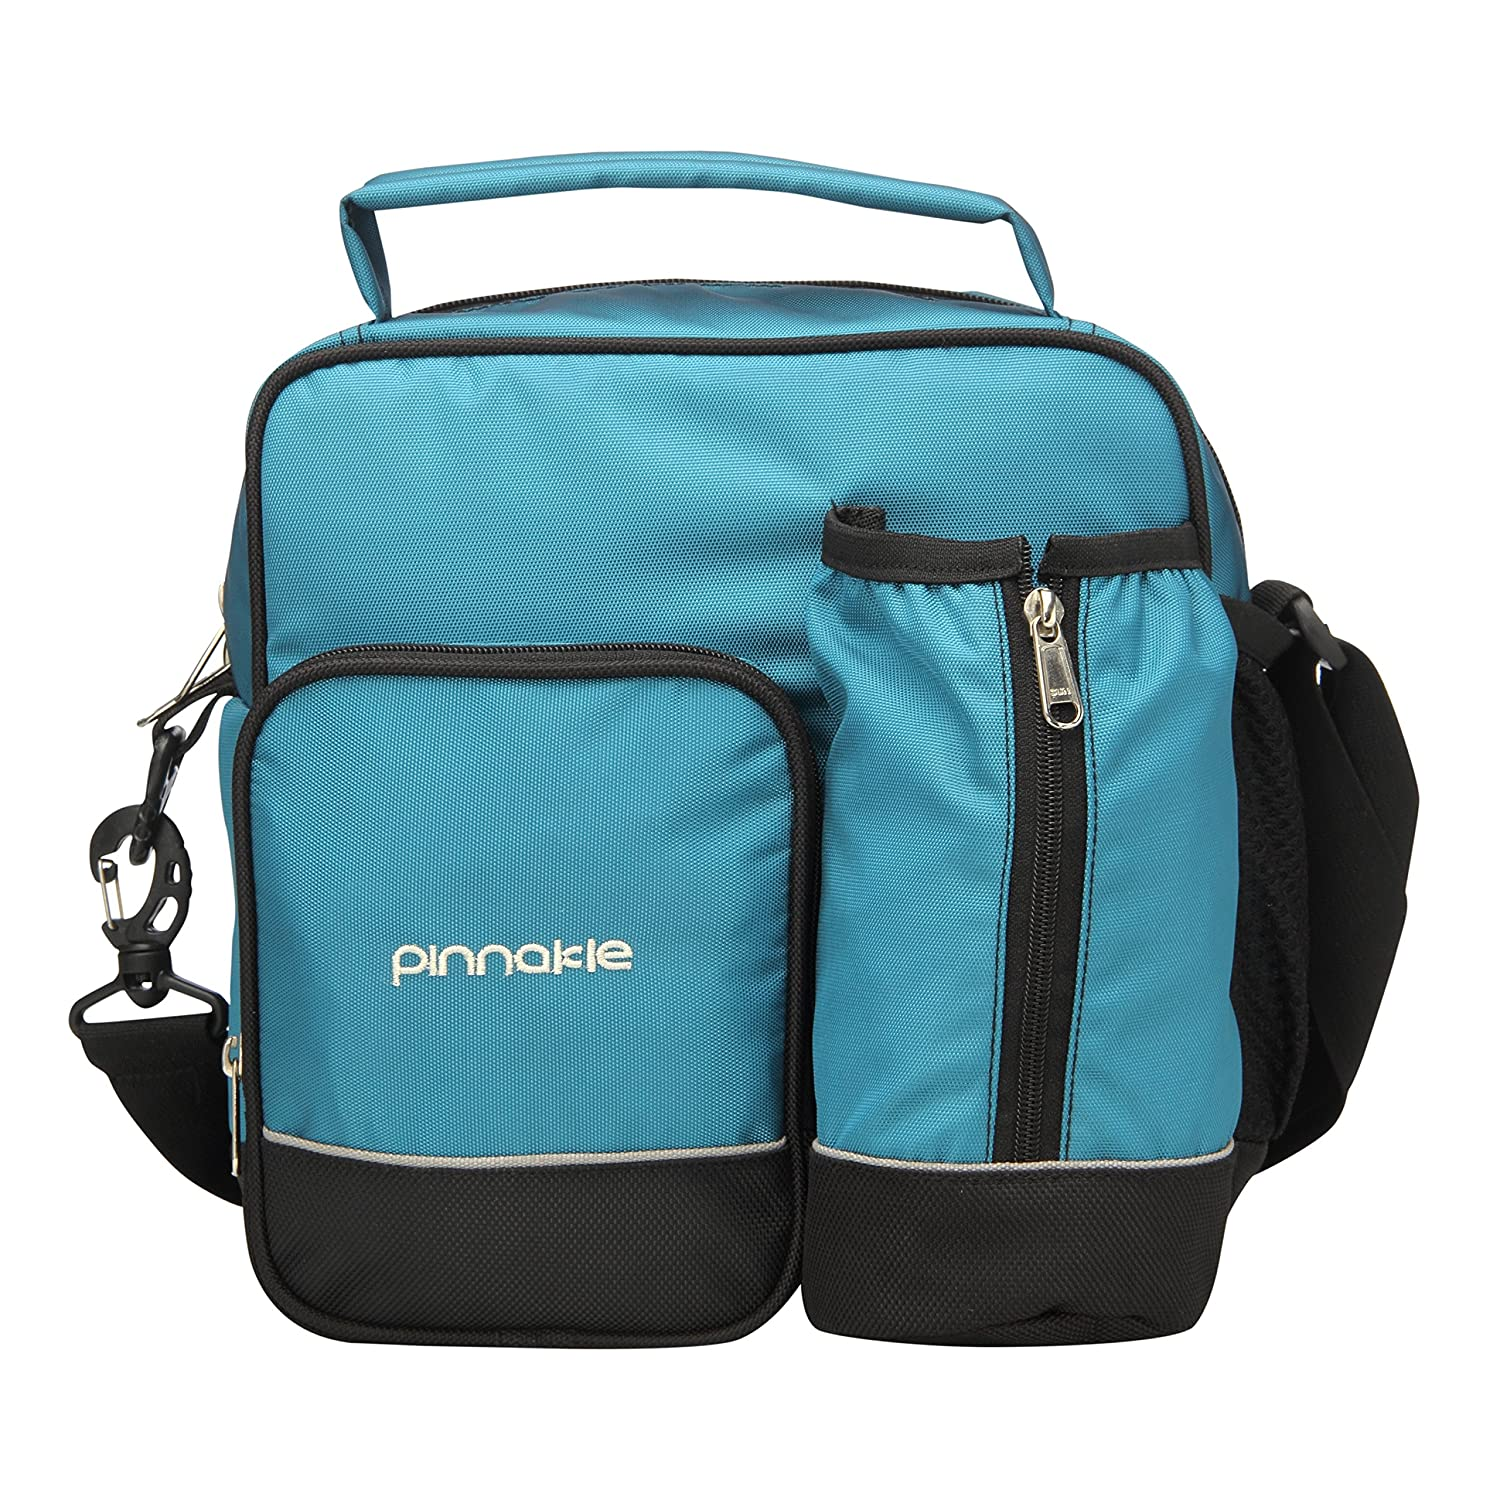 School bags online cash on delivery - 1 48 Of 406 Results For Bags Wallets And Luggage Luggage Children S Luggage